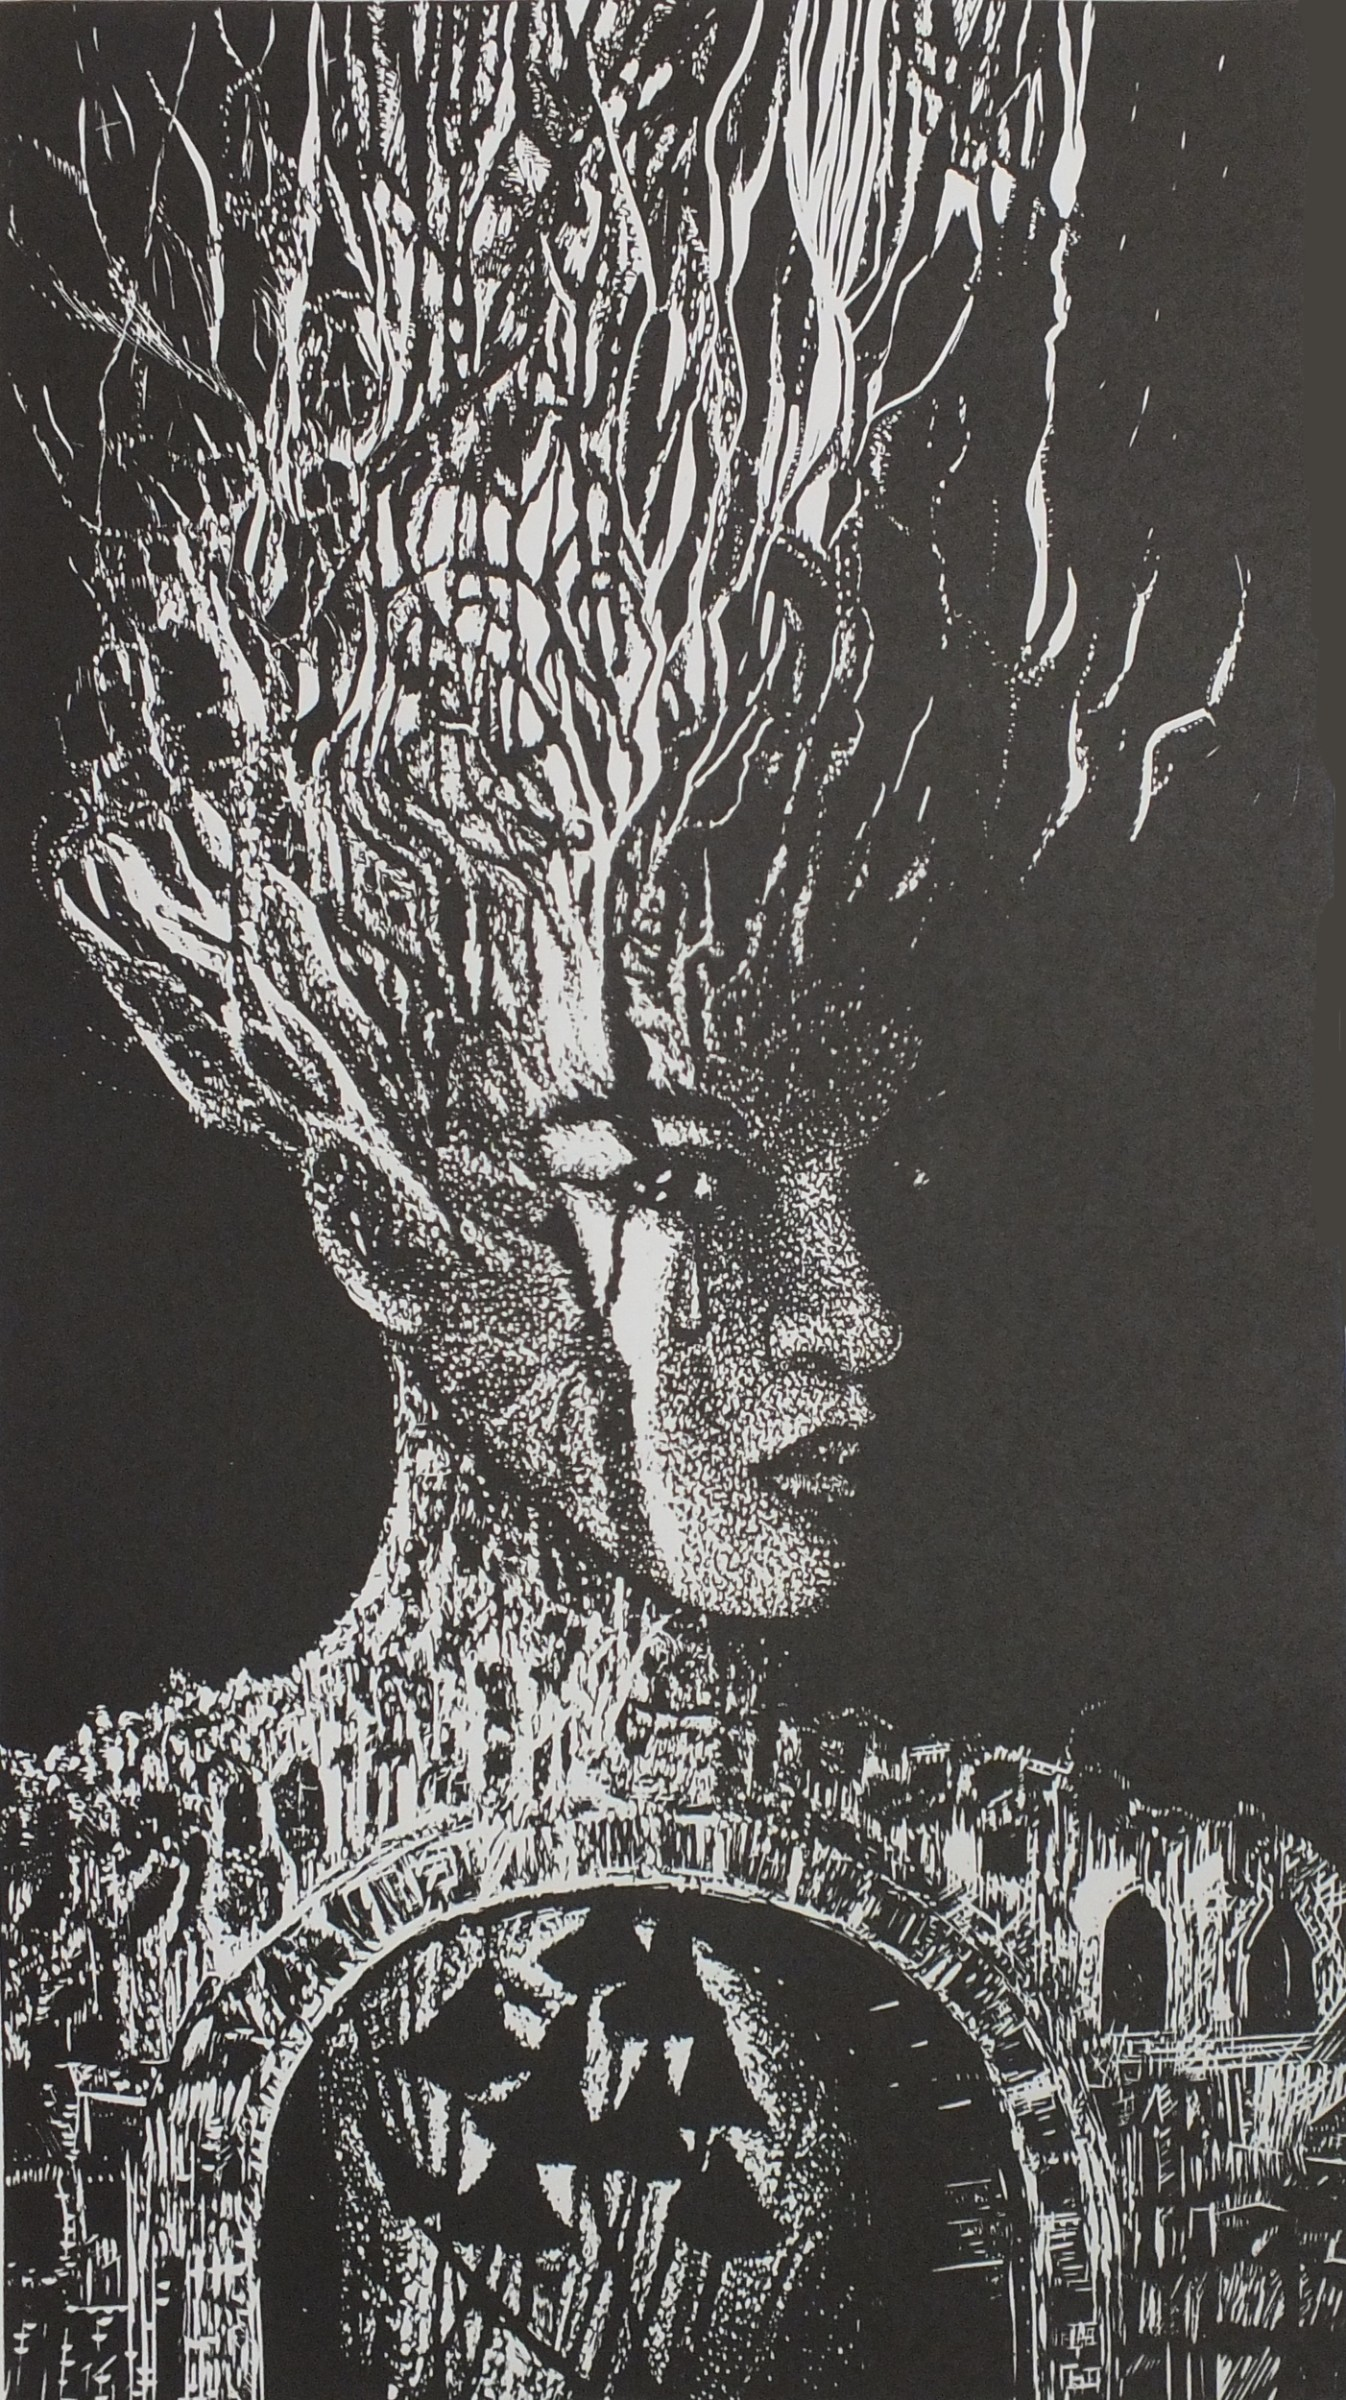 """<span class=""""link fancybox-details-link""""><a href=""""/exhibitions/17/works/image_standalone802/"""">View Detail Page</a></span><p><strong>Renata Sosinska</strong></p><p>Unfinished Song</p><p>linocut, ed of 7</p><p>35 x 54cm</p><p>£195 framed</p><p>£150 unframed</p>"""